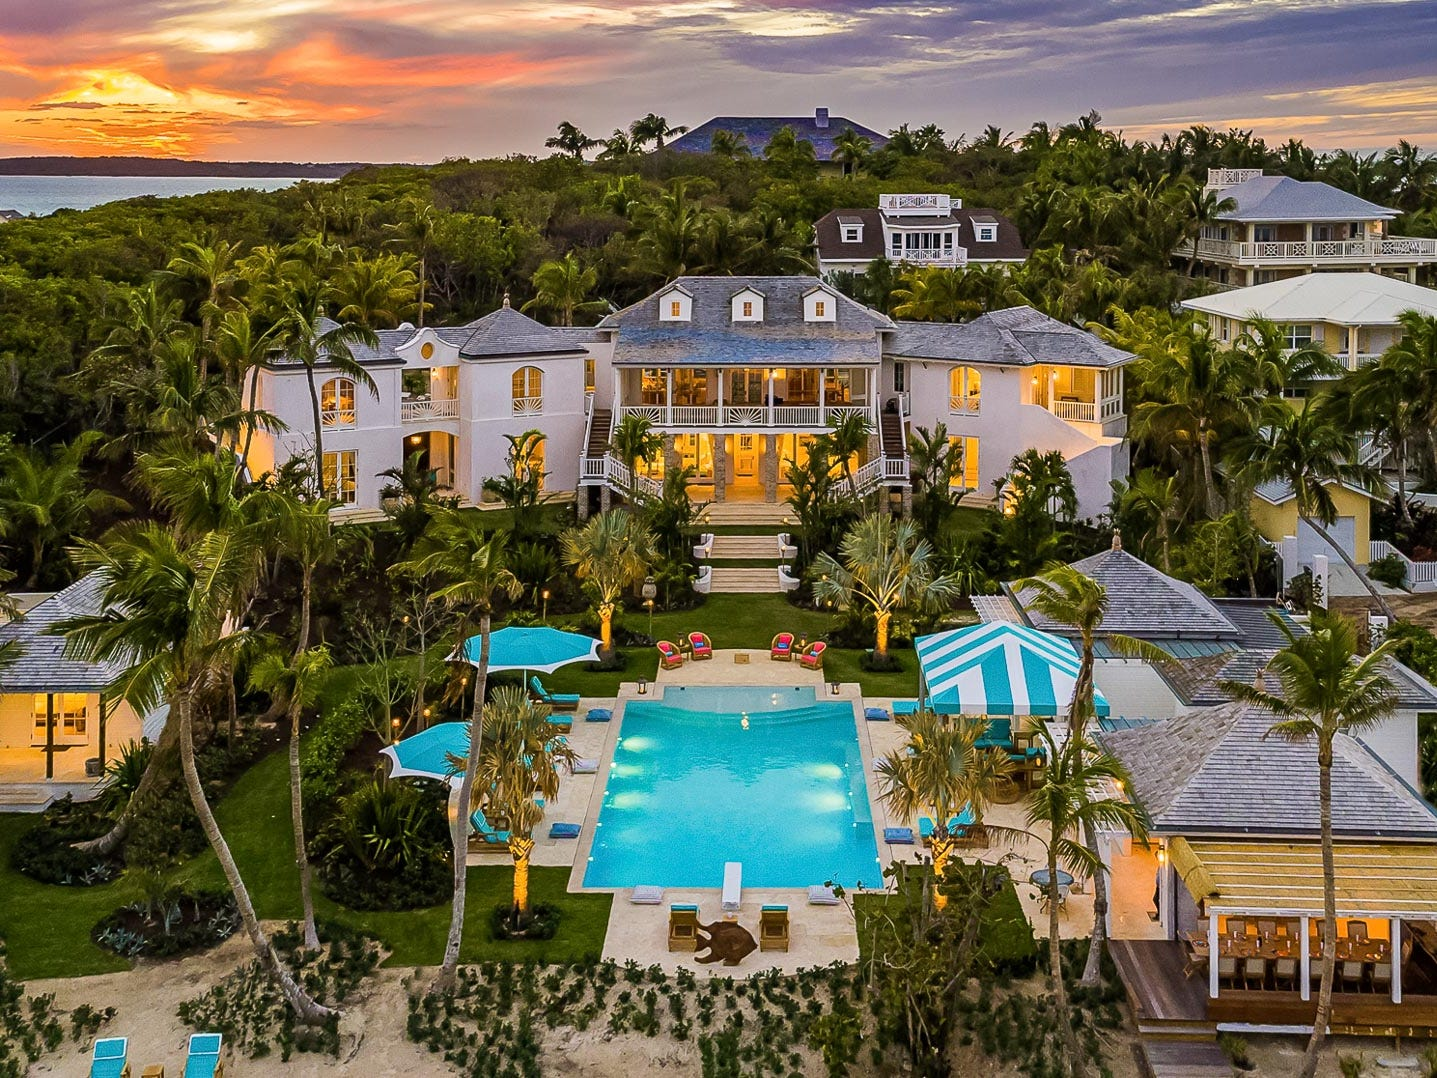 This six-bedroom property on Harbour Island in the Bahamas sleeps 12 and rents for $12,500 - $15,000 a night.